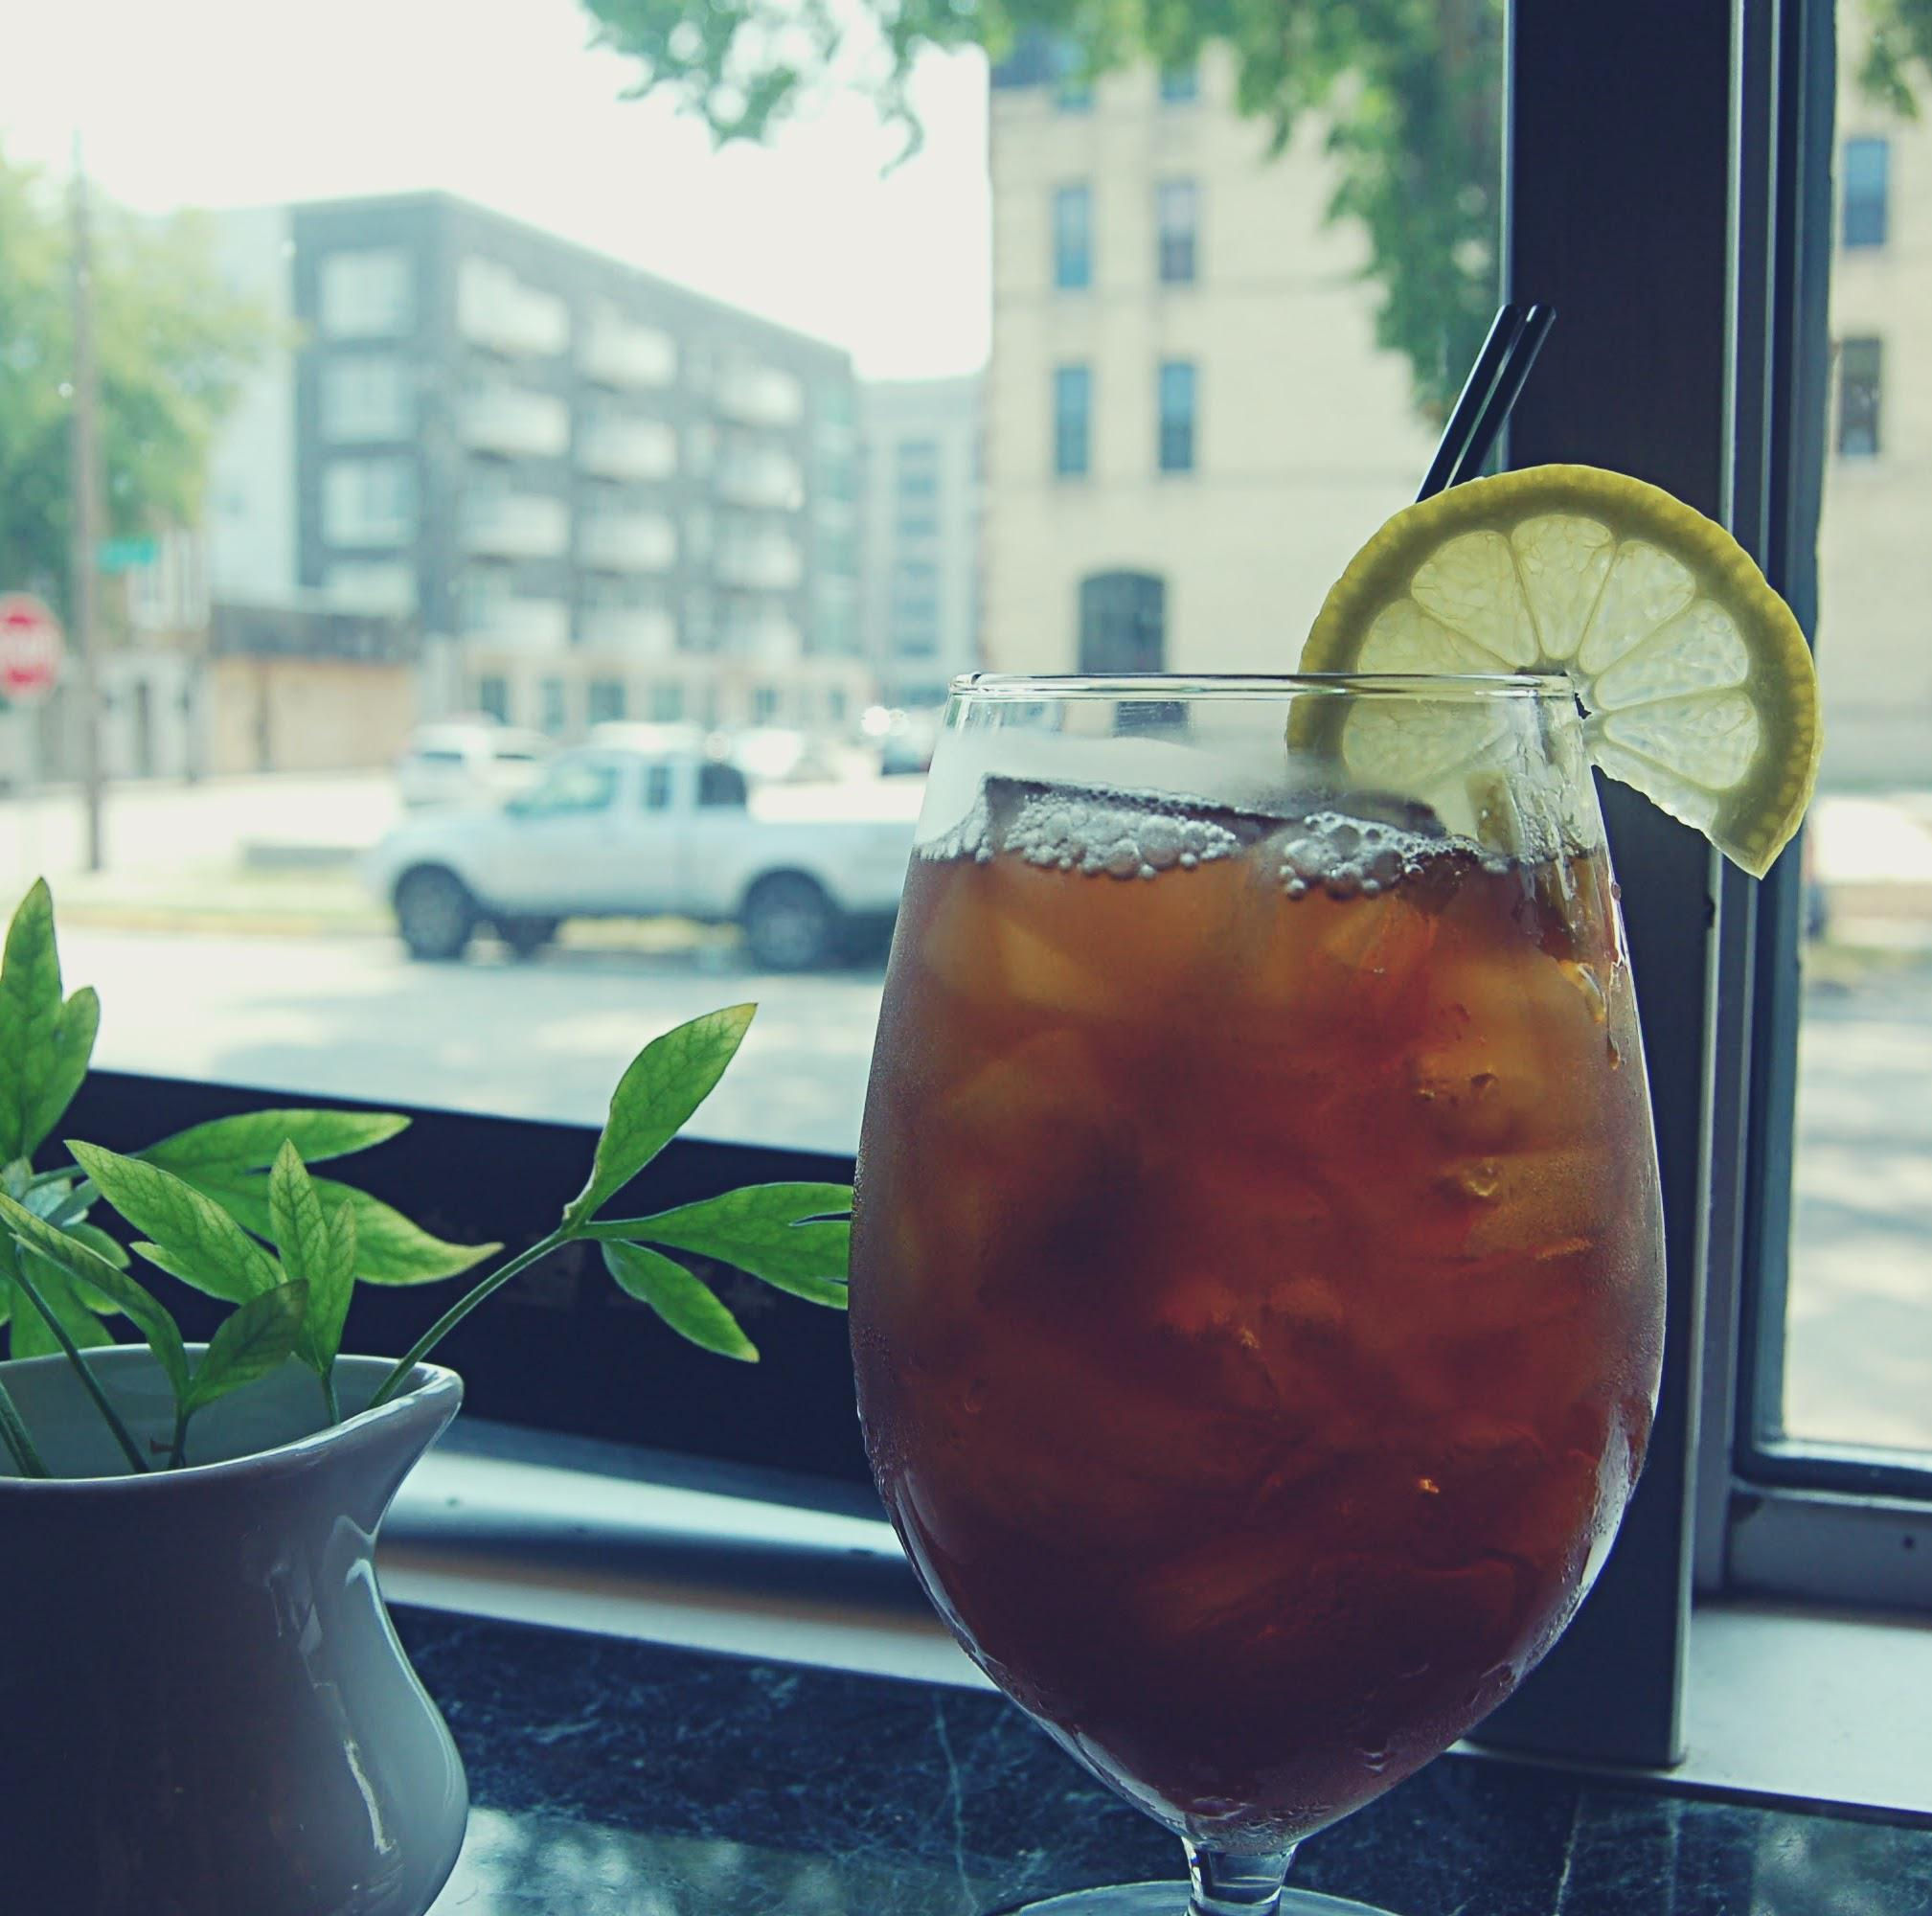 We make our iced tea fresh in house and proudly use local Rishi tea at Meraki